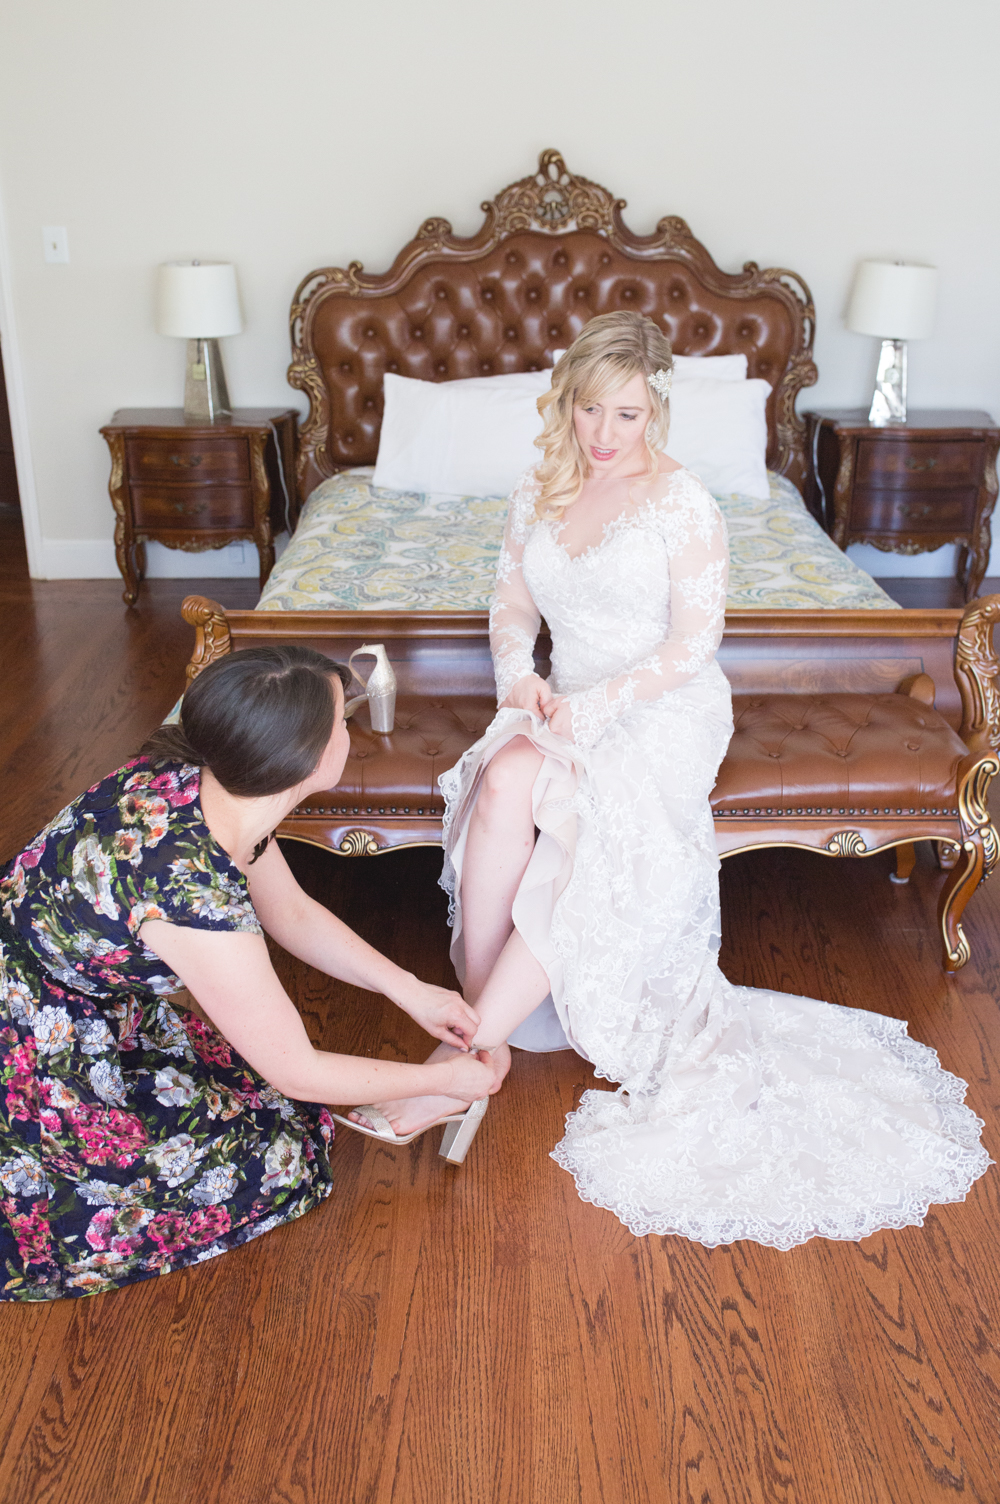 wedding-sf-bride-getting-ready.jpg